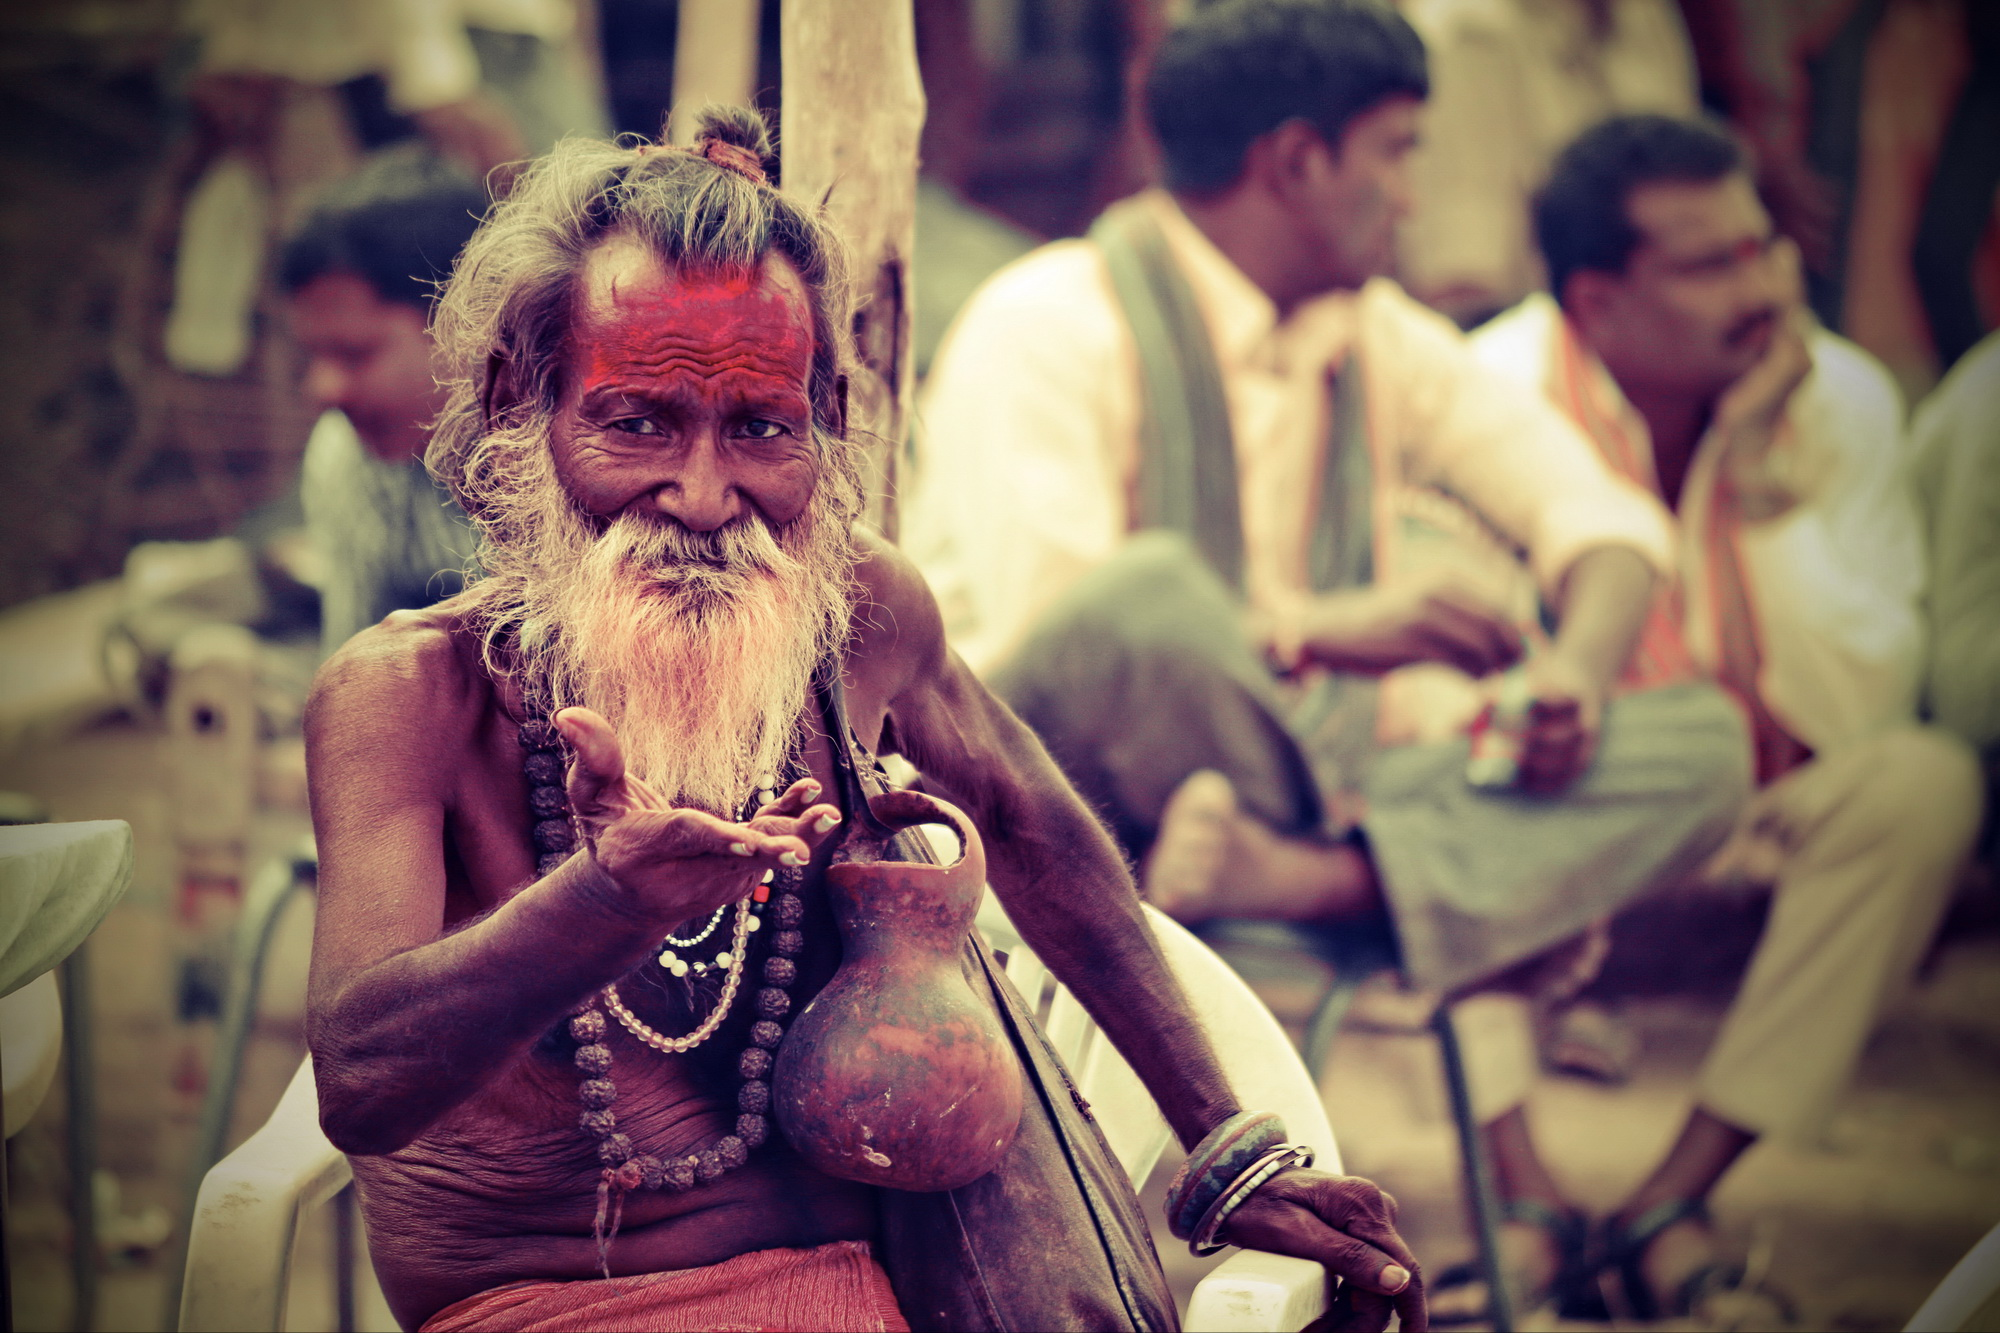 A sadhu explaining the complexities of modern life